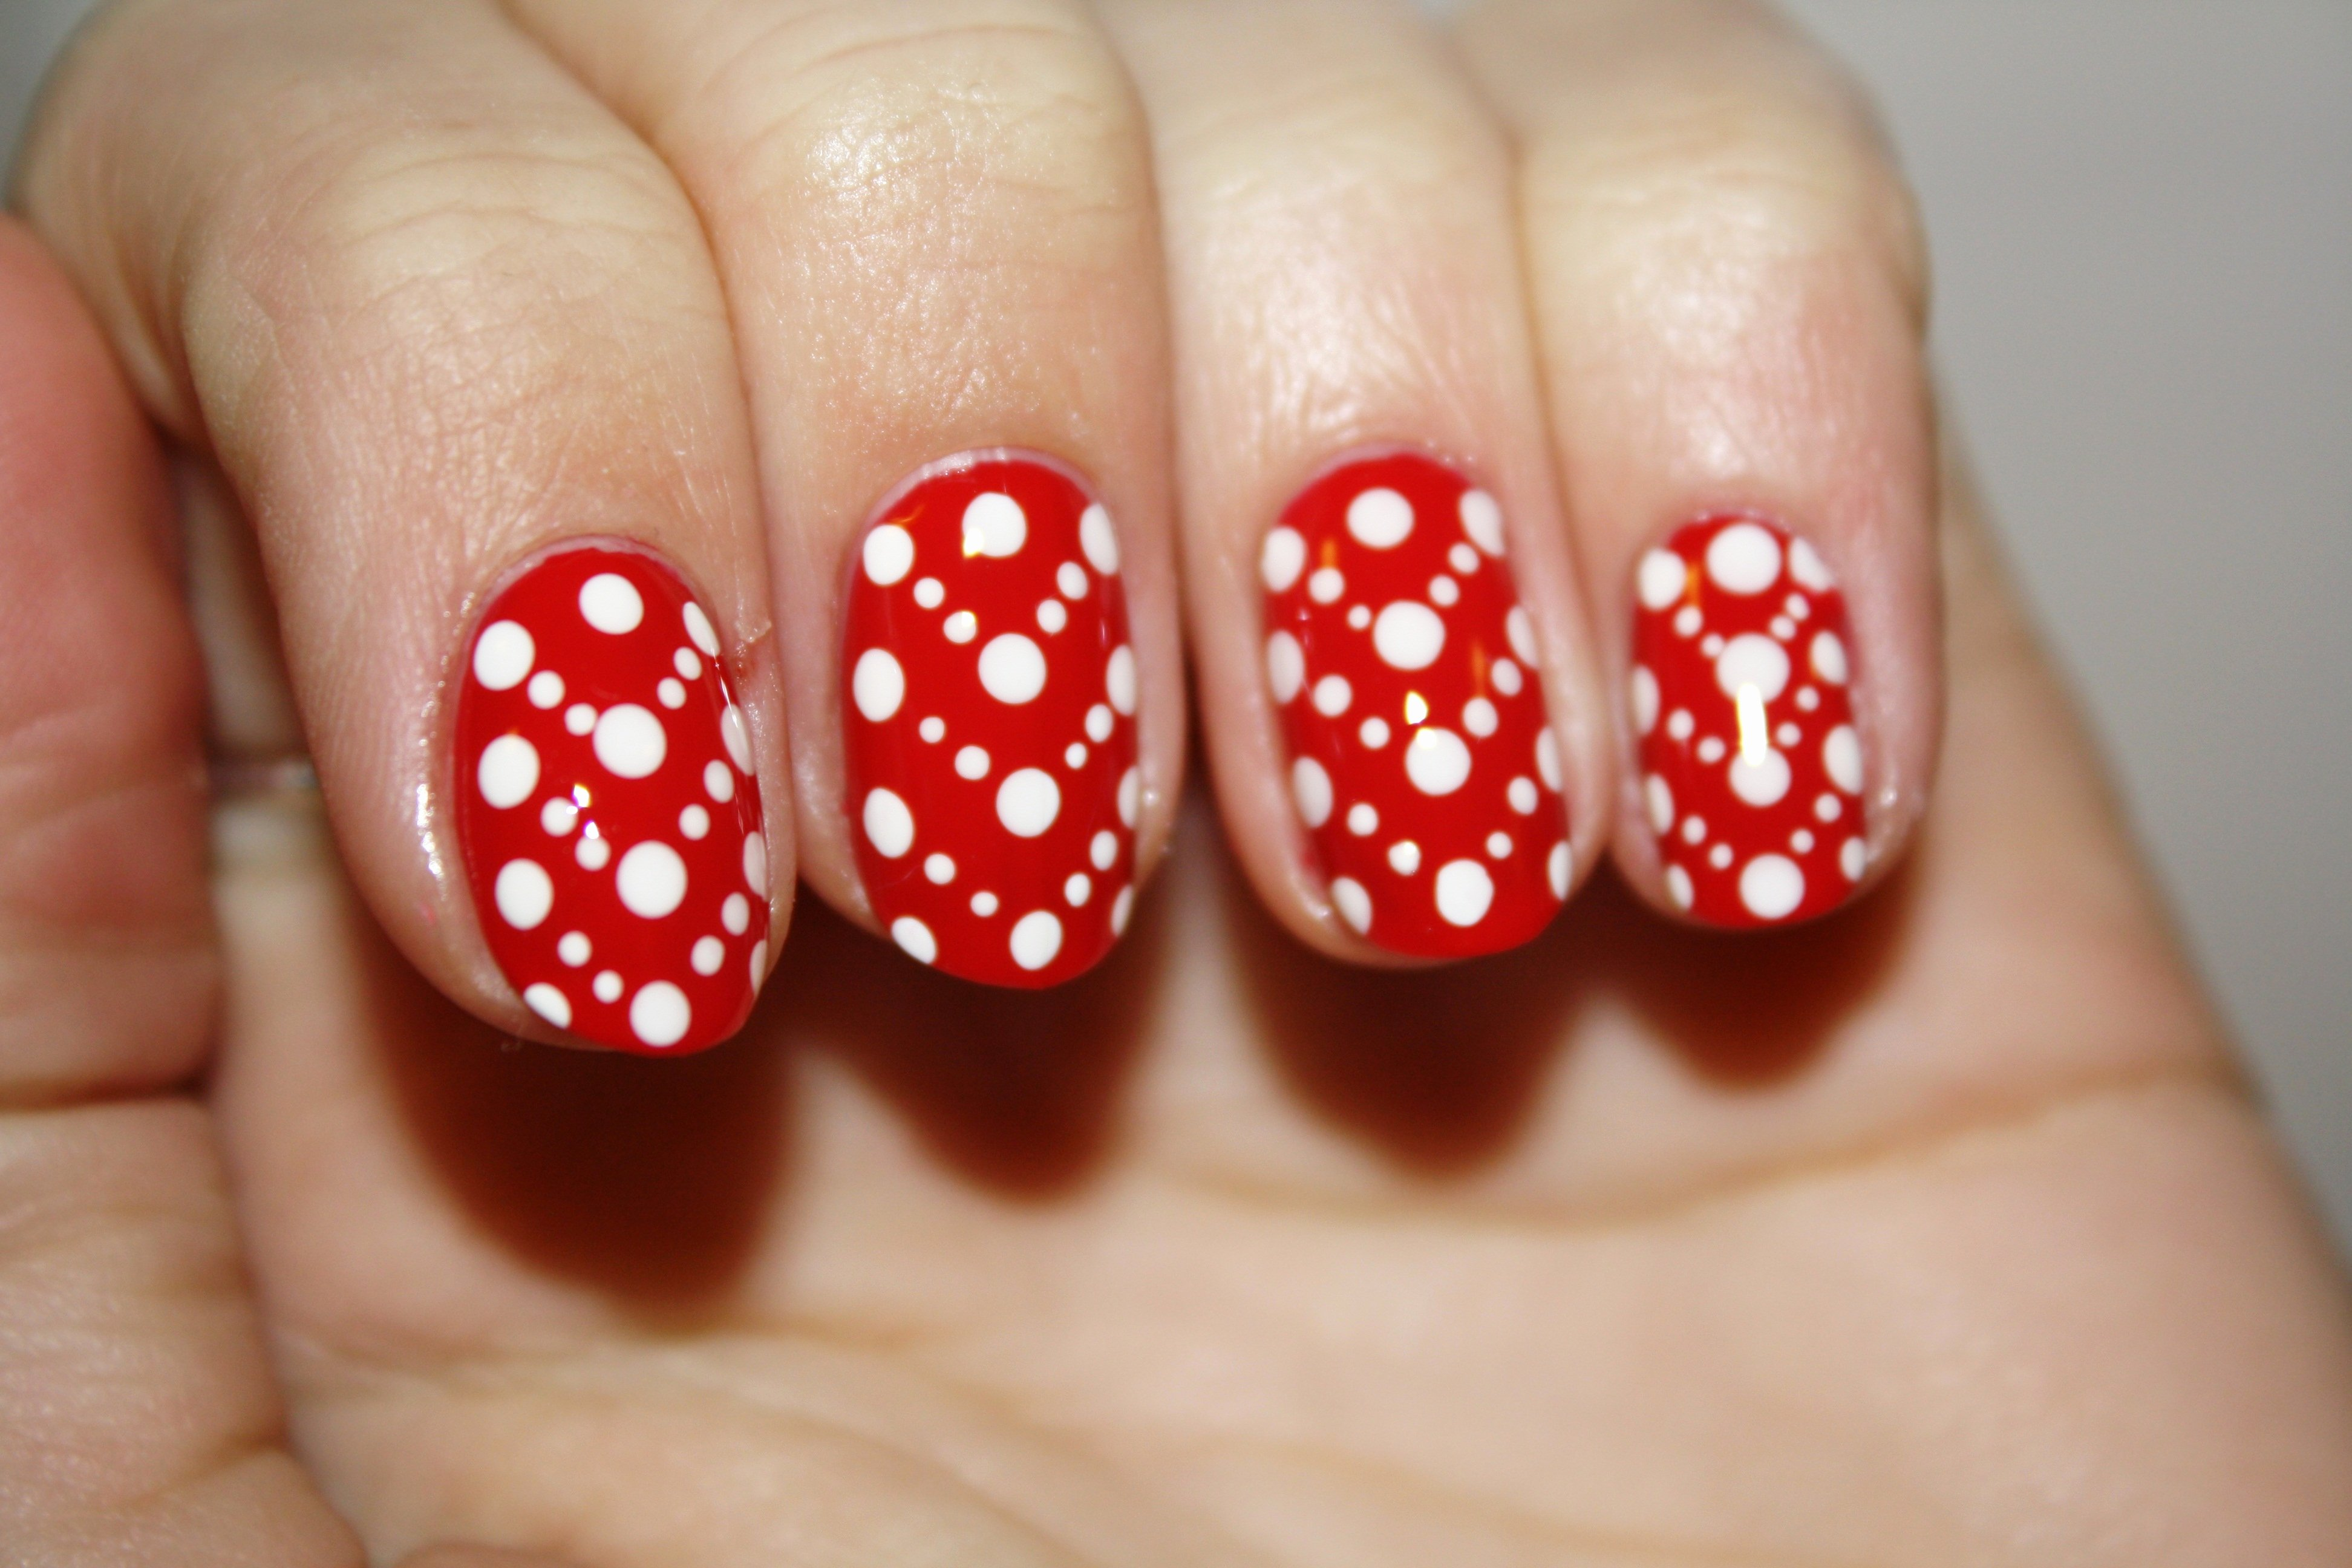 Nail Art Designs Videos Unique 33 Nail Art Designs to Inspire You – the Wow Style